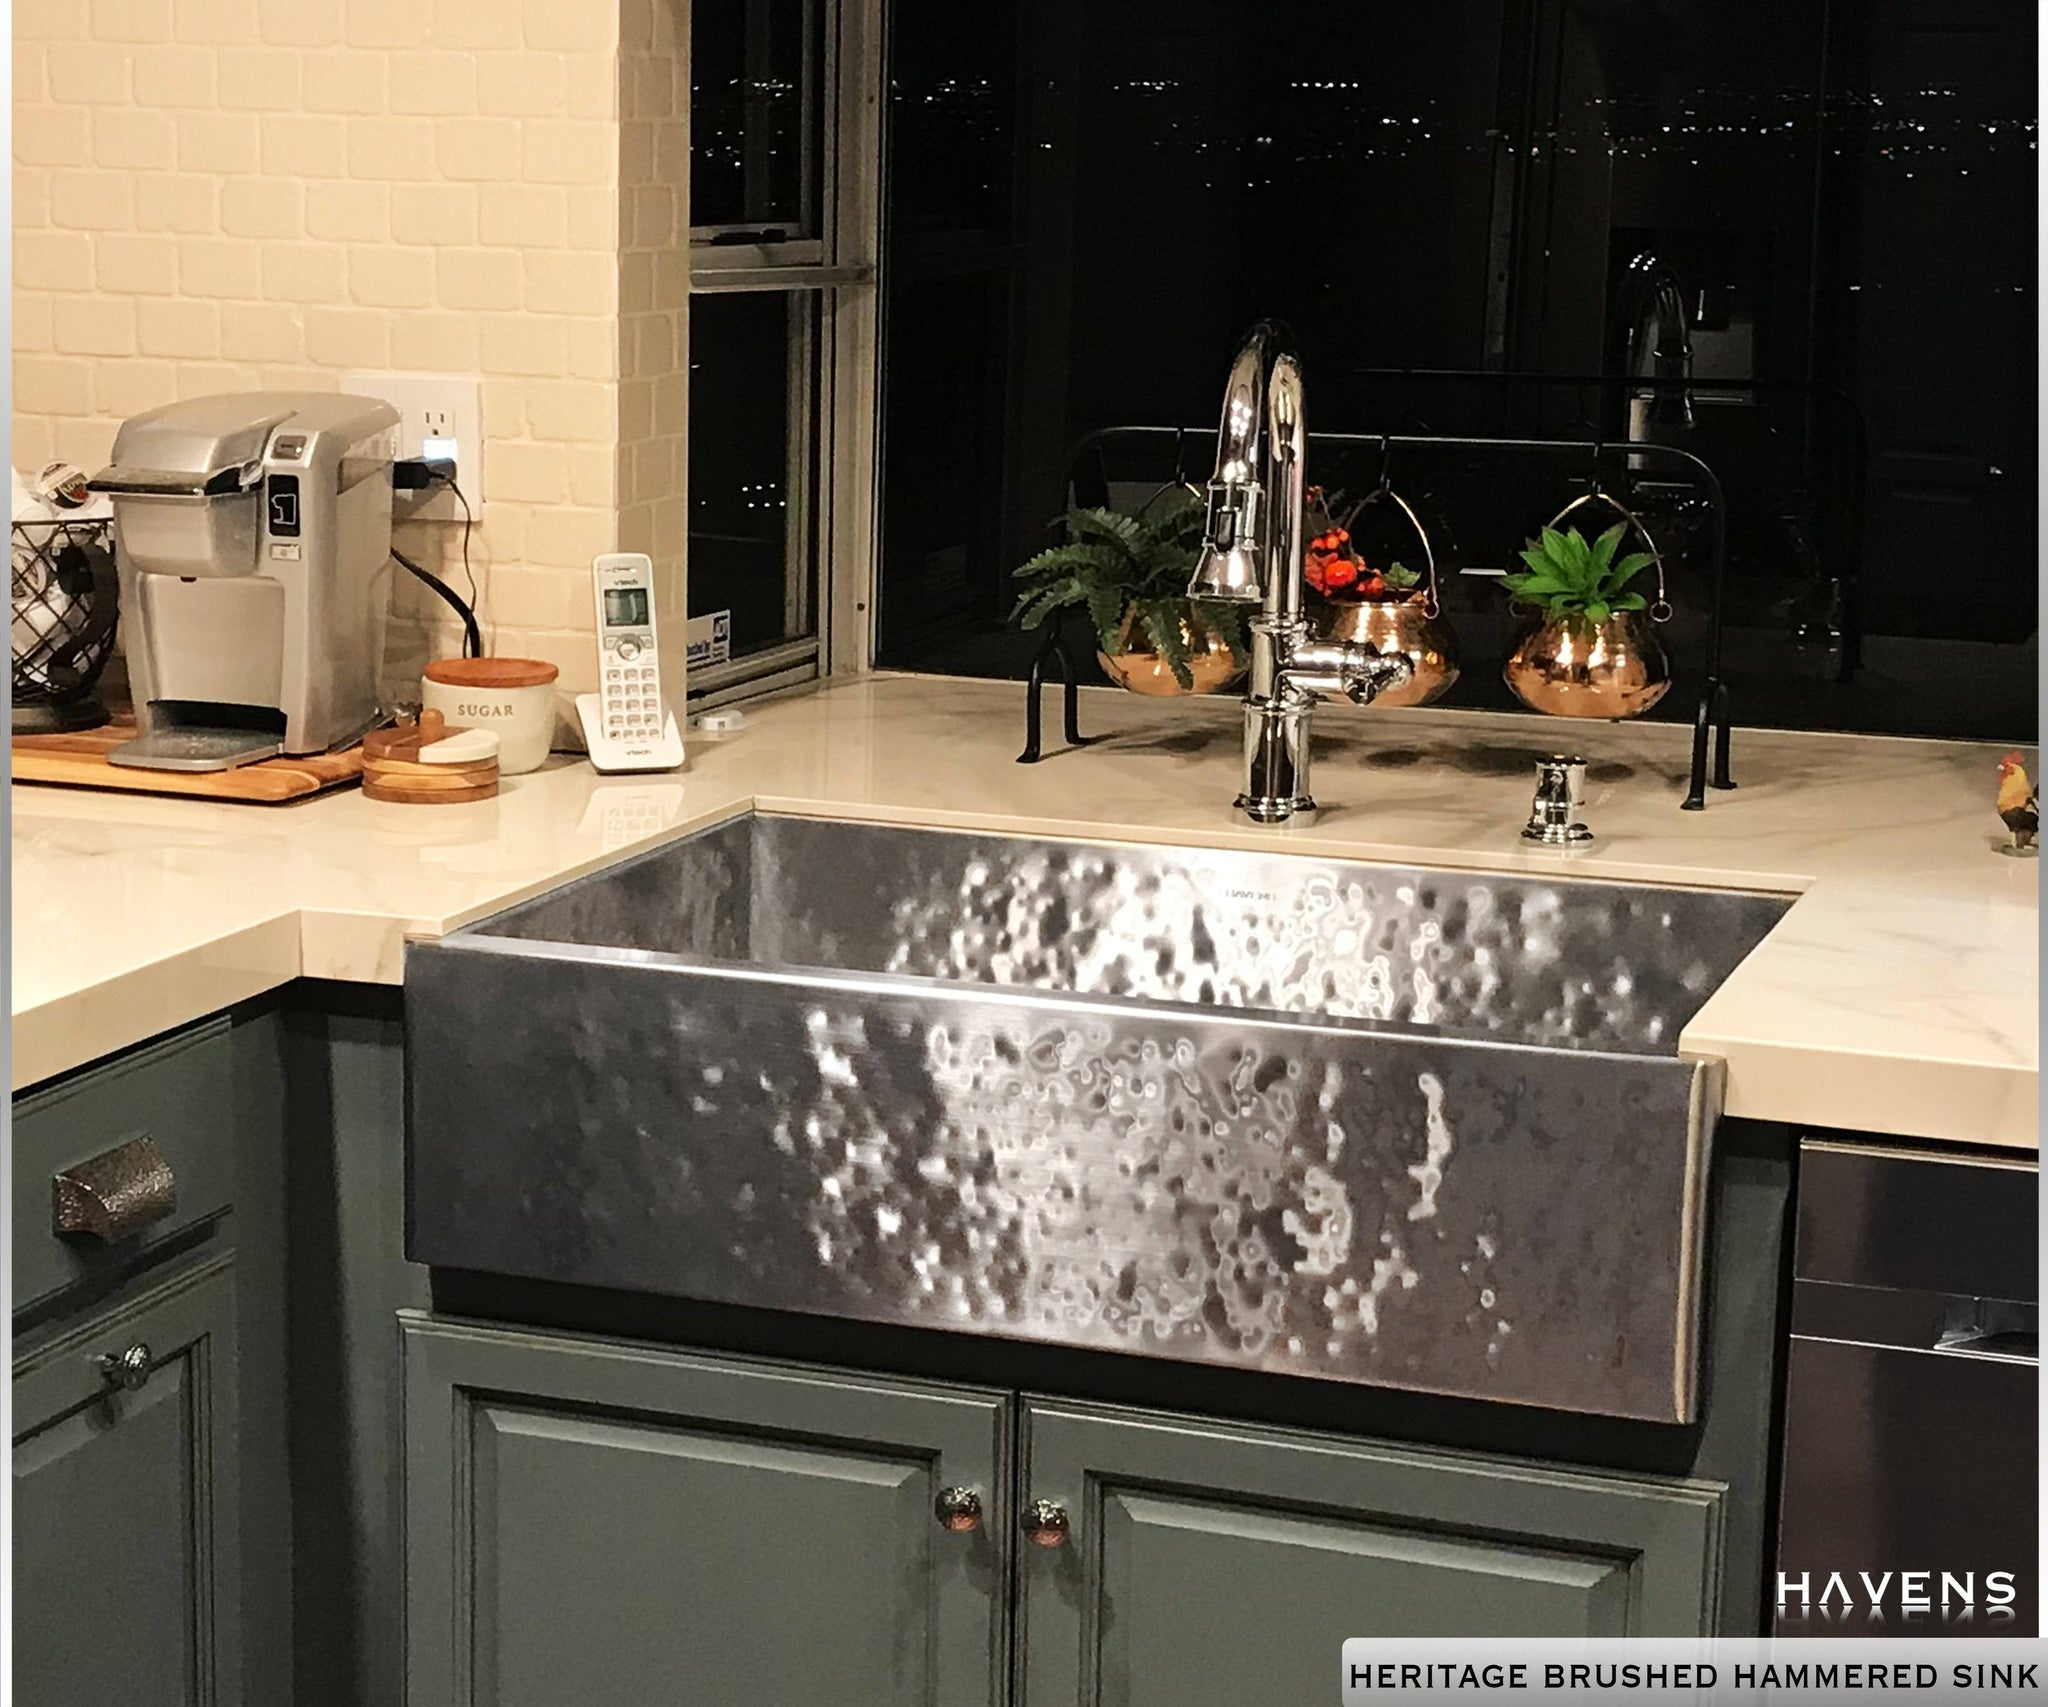 Hammered stainless steel farmhouse sink sink. The Heritage 16 gauge ss sink by Havens Luxury Metals.